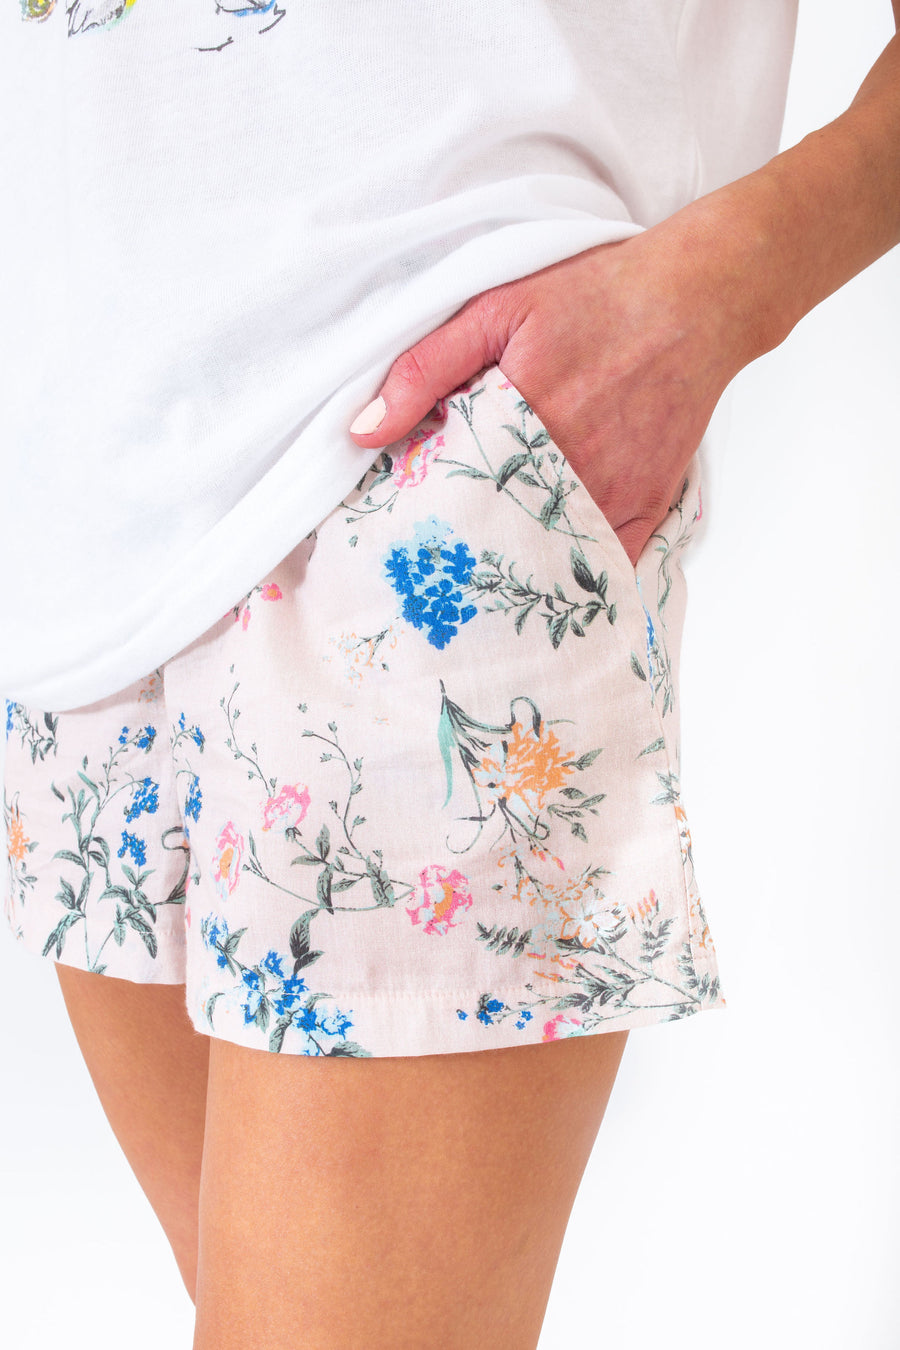 BONDI LOUNGE SHORTS BLUSH EYELET *LIMITED*EDITION*